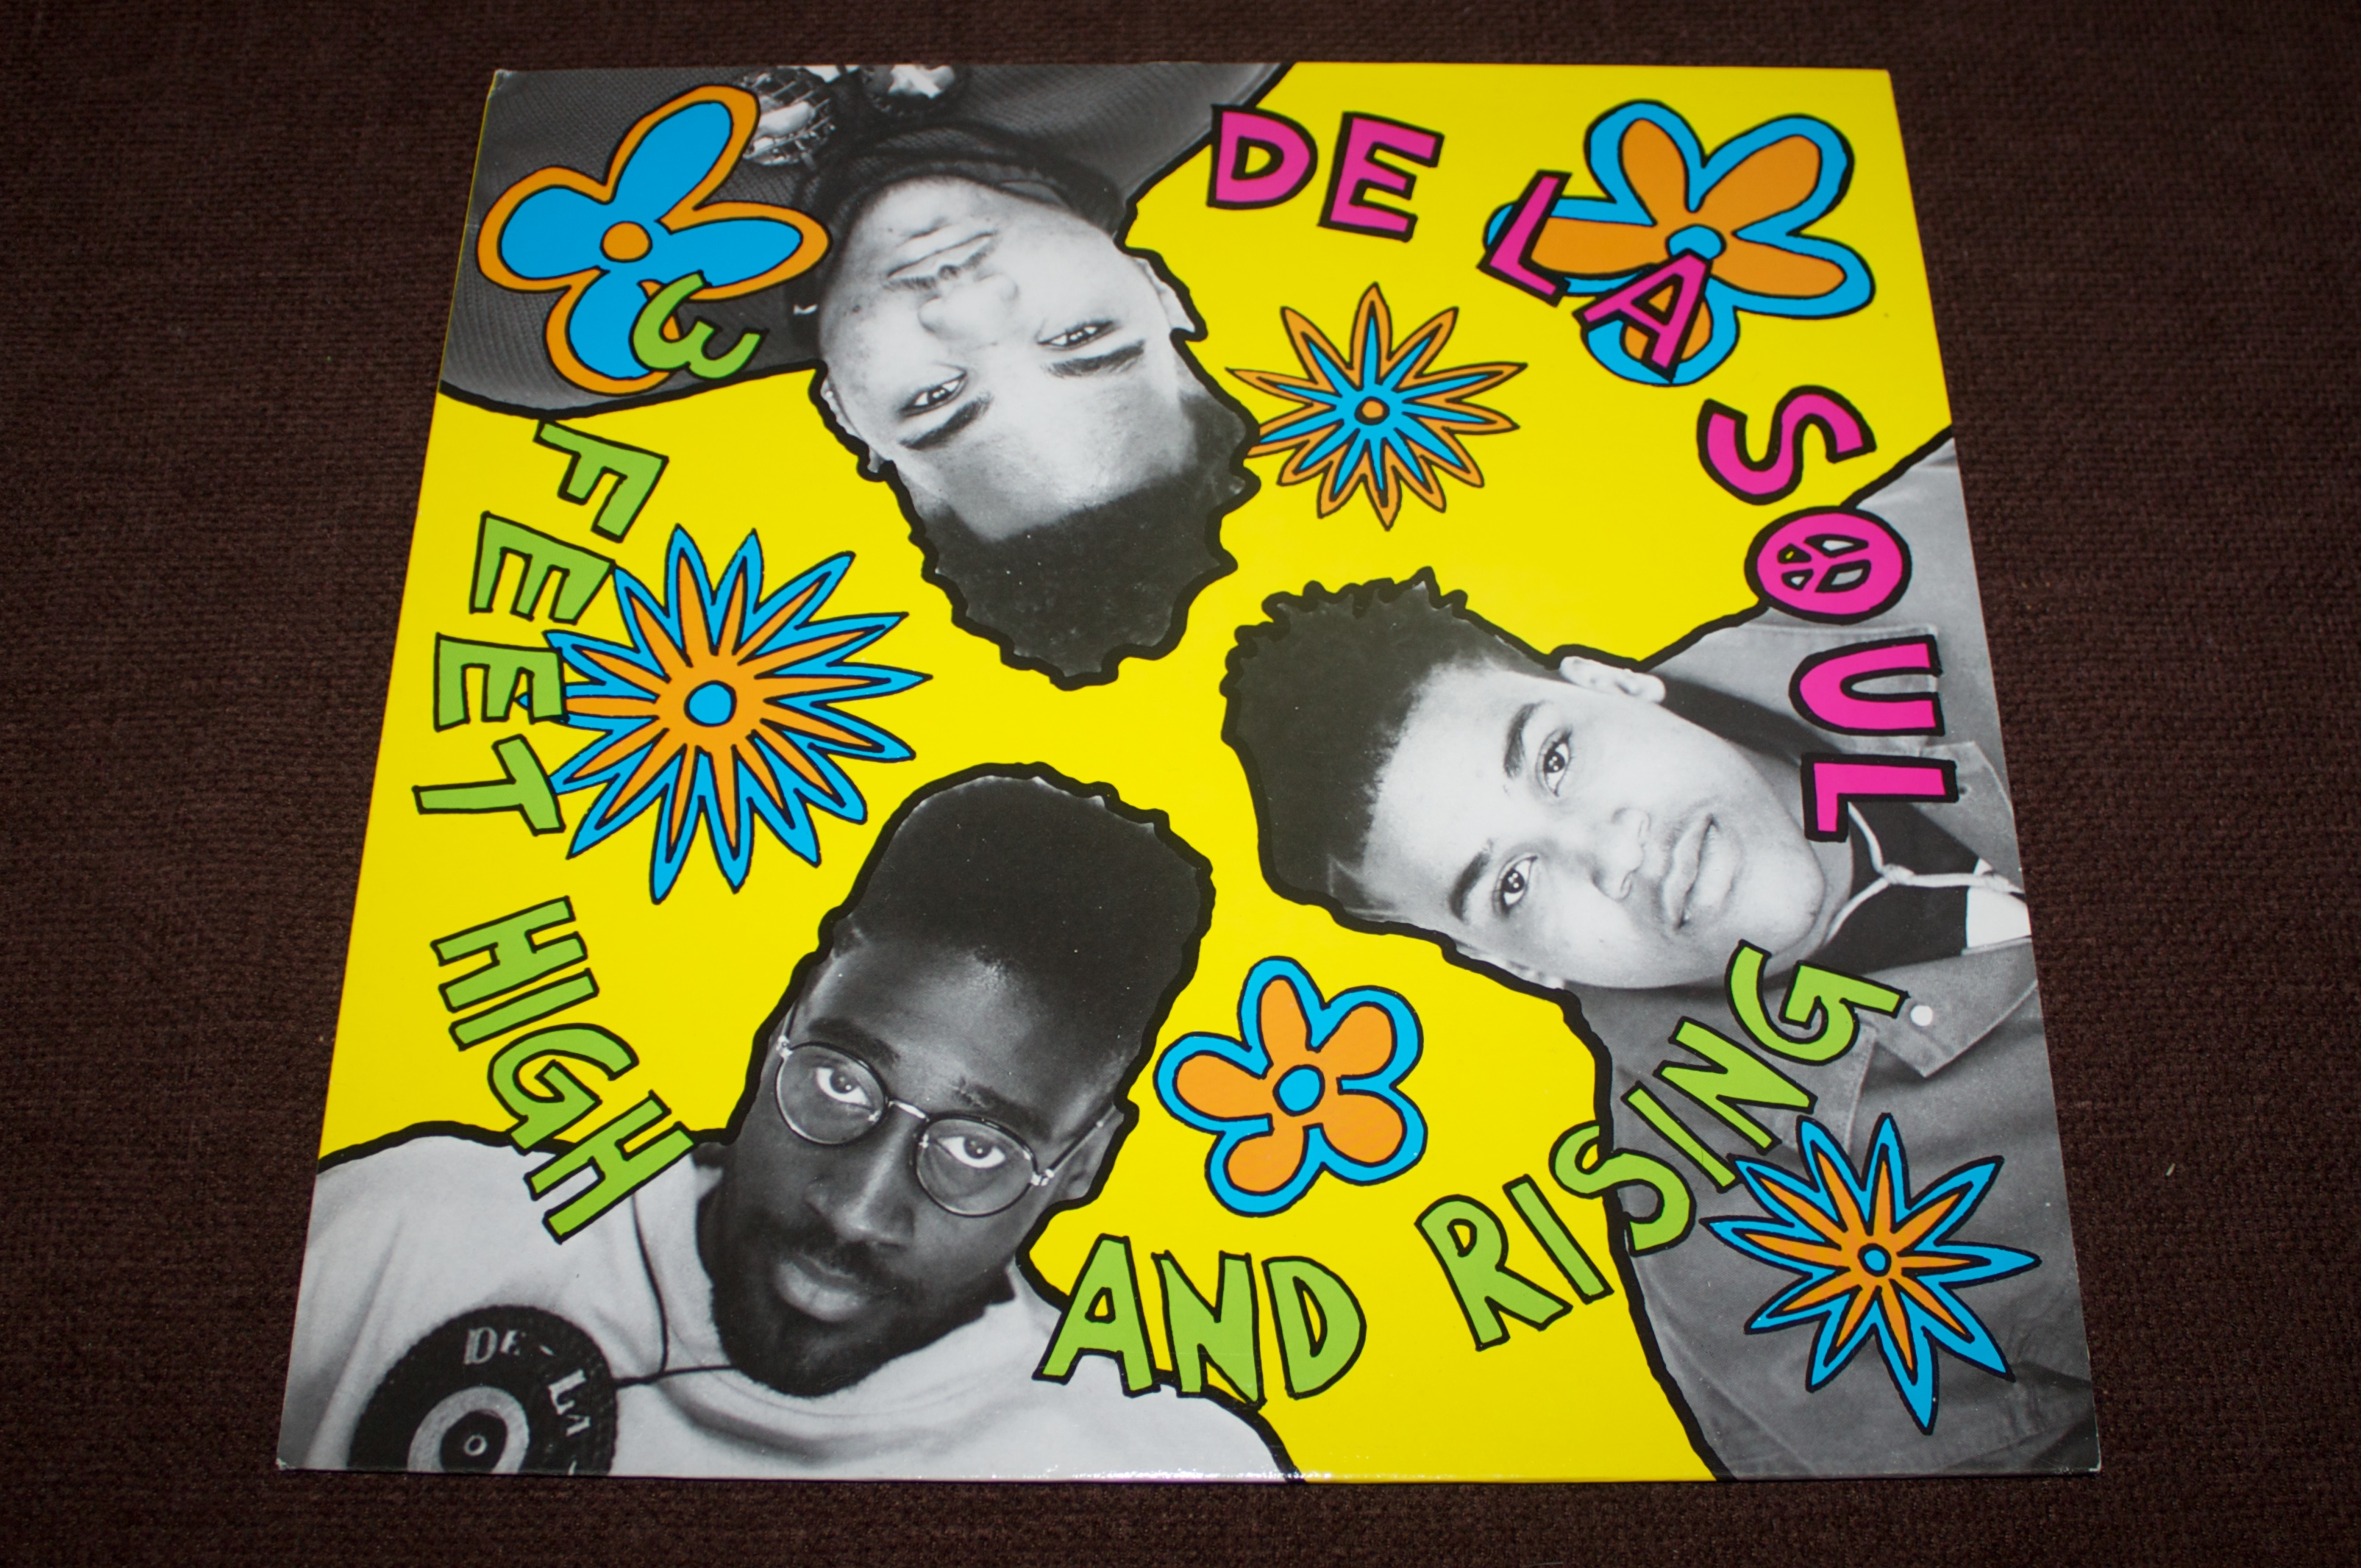 Astral nymphets  3 Feet High and Rising is the debut album from the American trio De La  Soul, which was released in 1989. The album marked the first of three  full-length ...